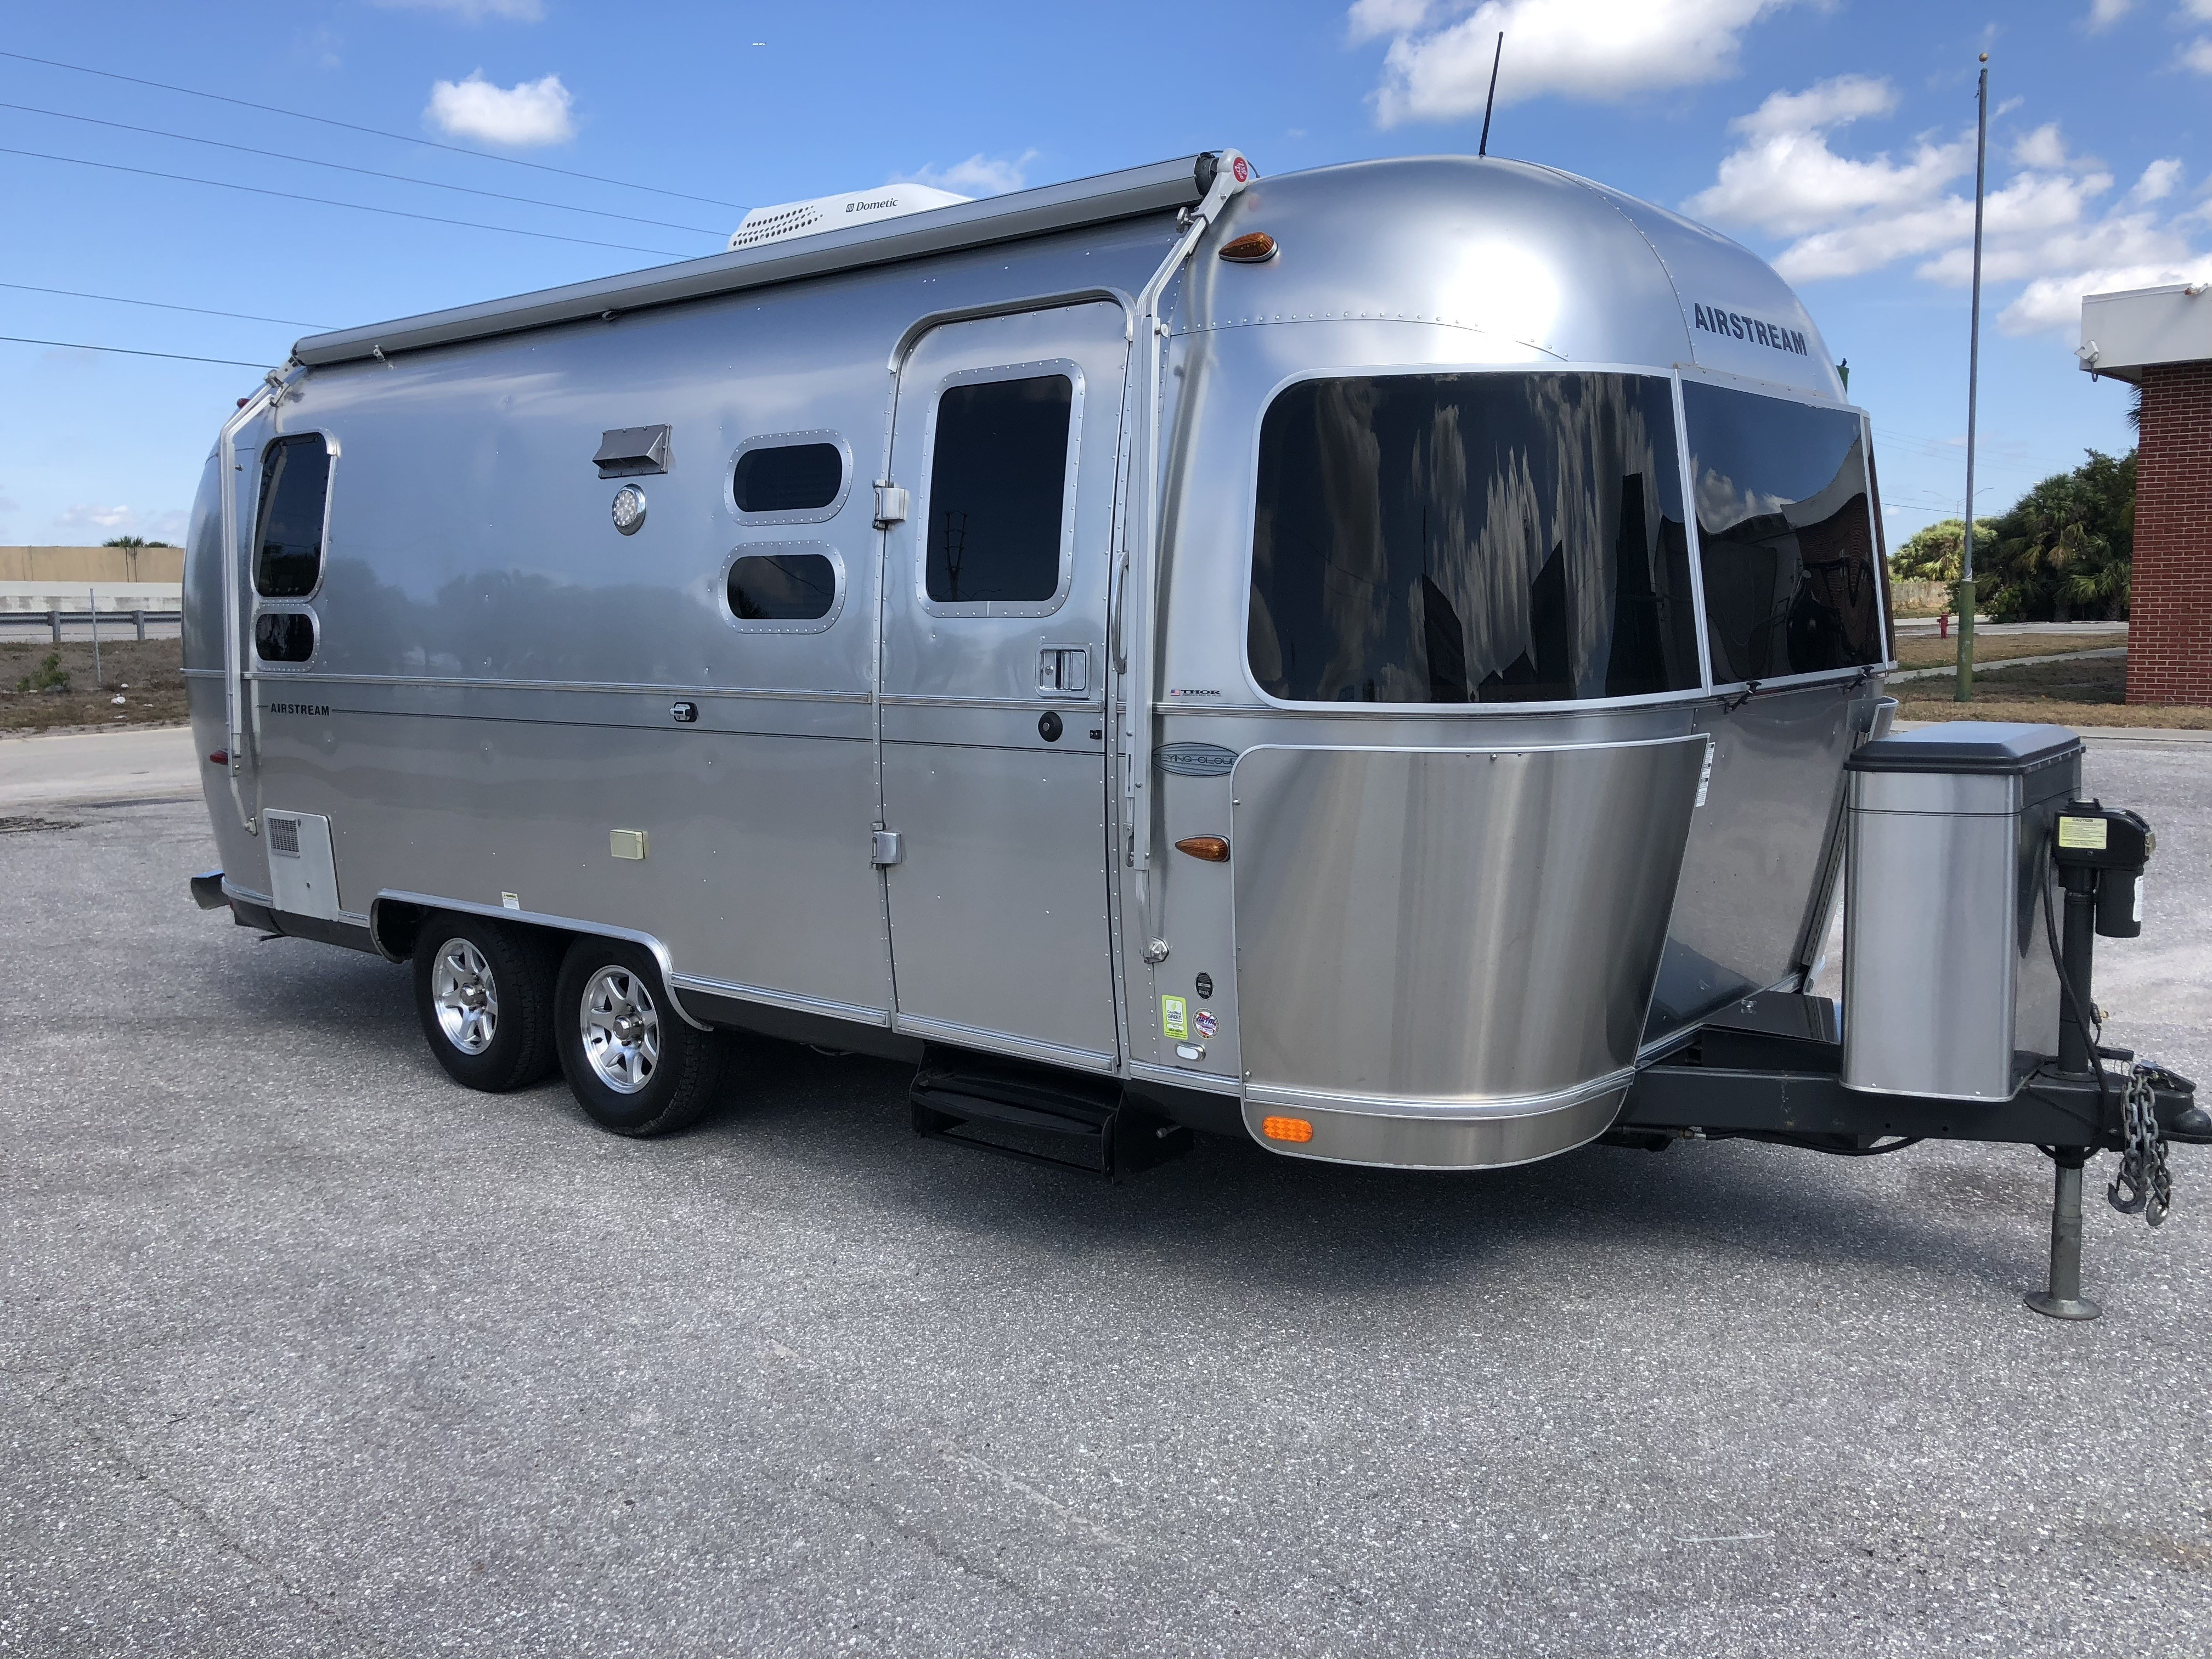 Airstream Rv FLYING CLOUD For Sale Airstream Rv RVs RvTrader